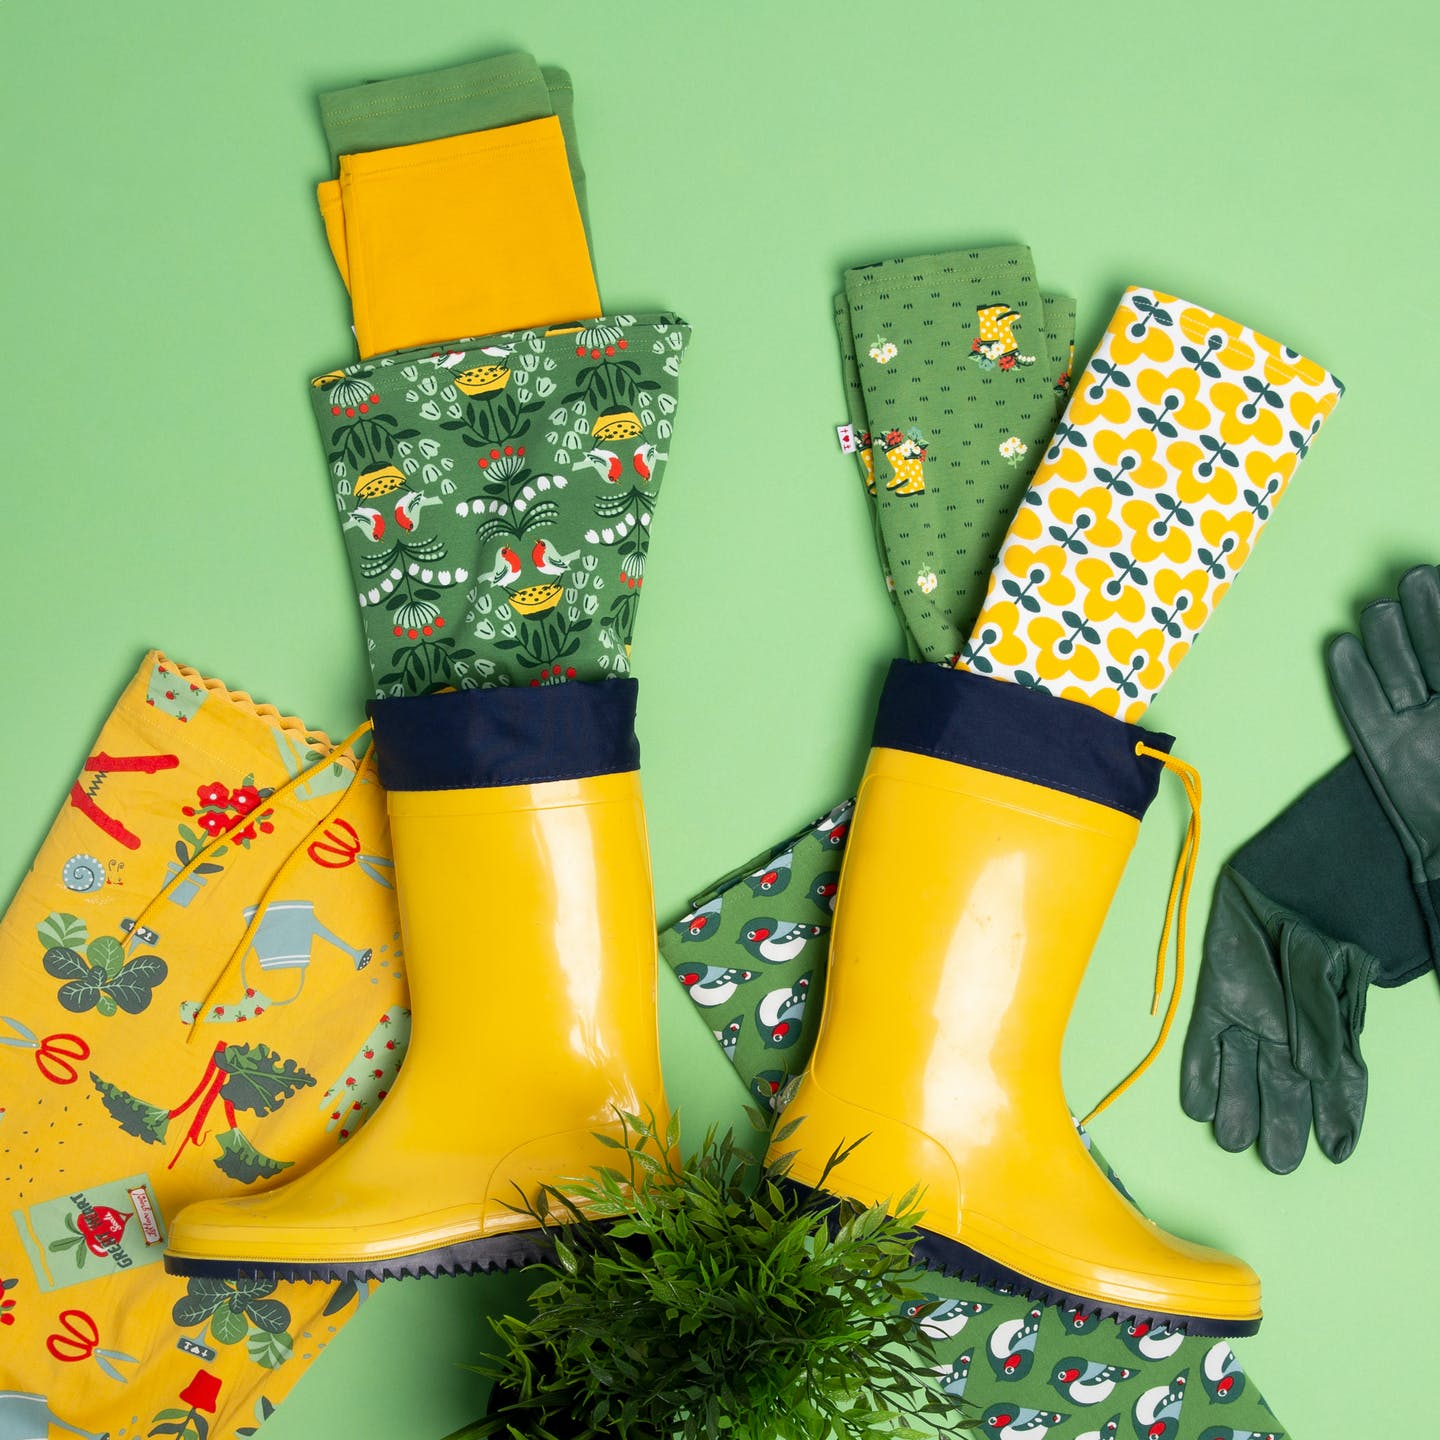 Prints with wellies, flowers and birs